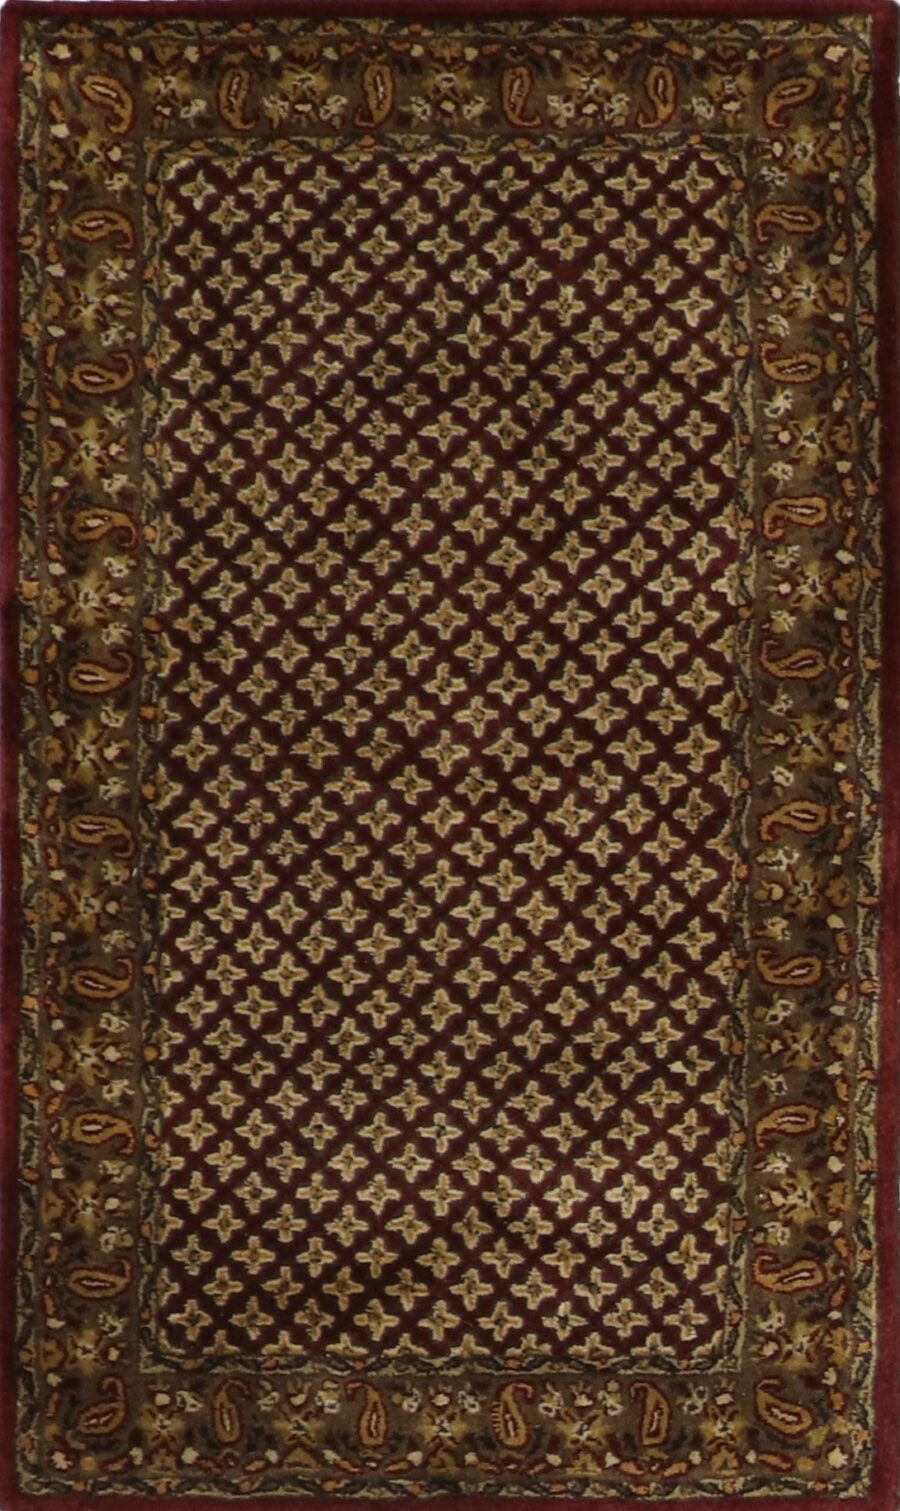 """3'x5'1"""" Decorative Burgundy Wool Hand-Tufted Rug - Direct Rug Import 